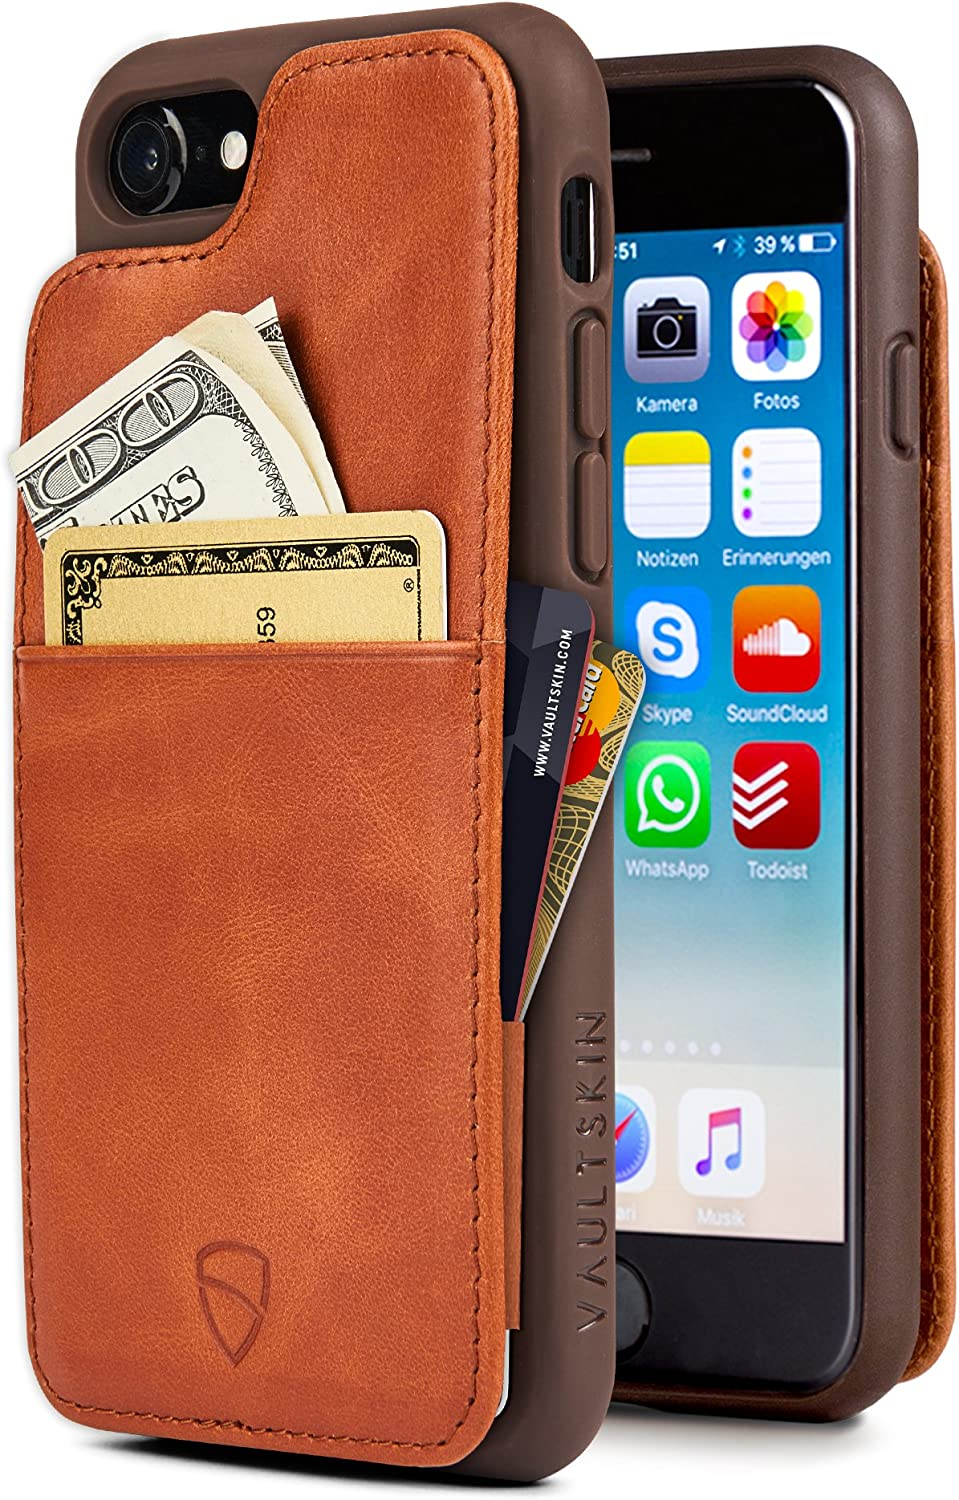 iPhone 7/8 Wallet Case, Vaultskin Eton Armour for iPhone 7/8/SE 2020, Slim Minimalist Bumper Case for Cards and Cash, Genuine Leather - Holds up to 10 Cards (iPhone 7/8,SE2020, Cognac)